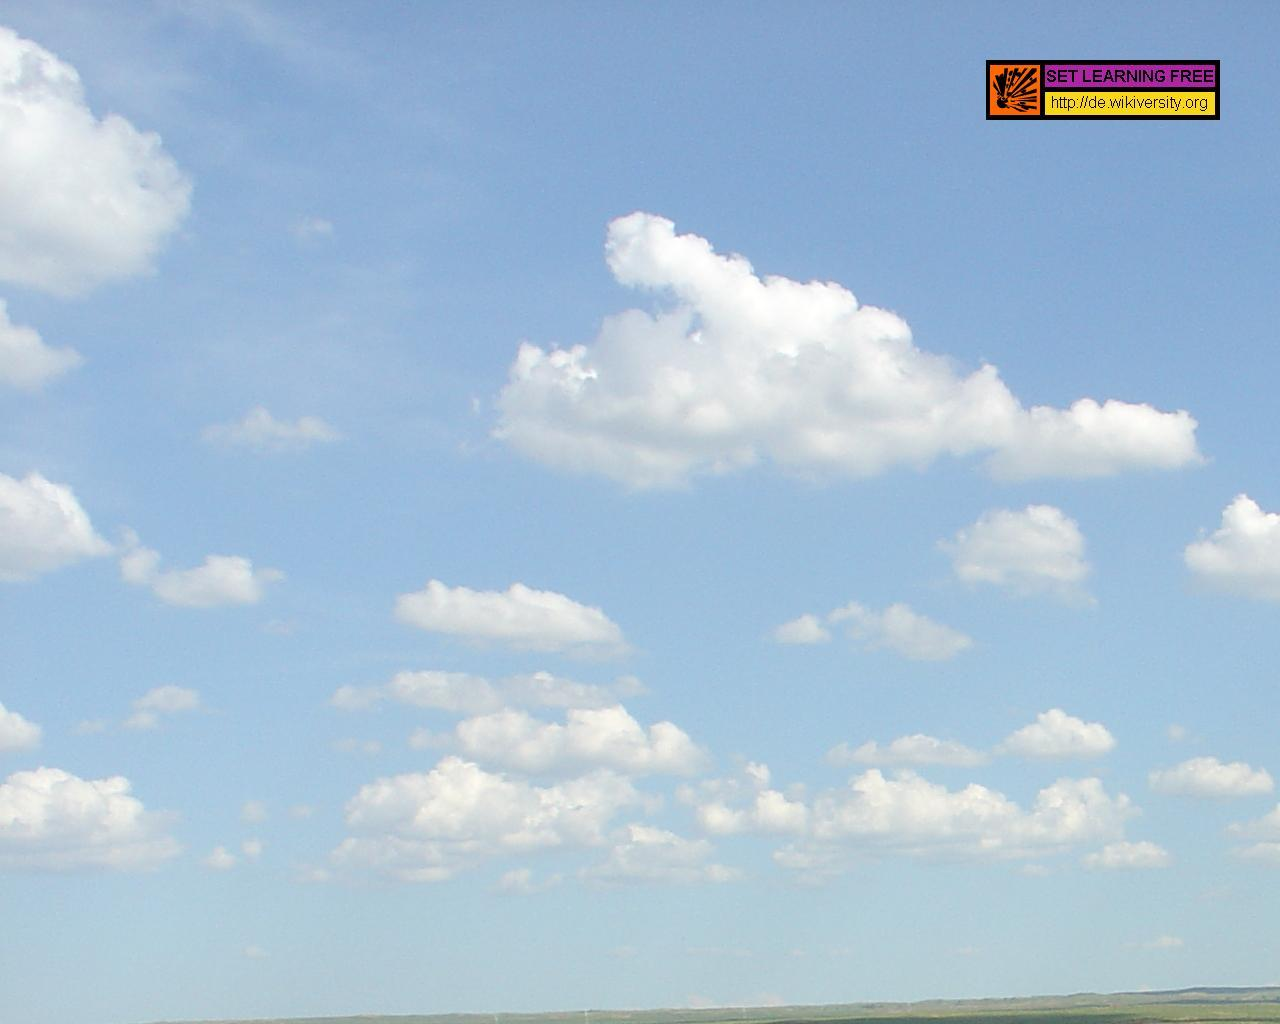 File:1280x1024 Wallpaper Blue Sky.jpg